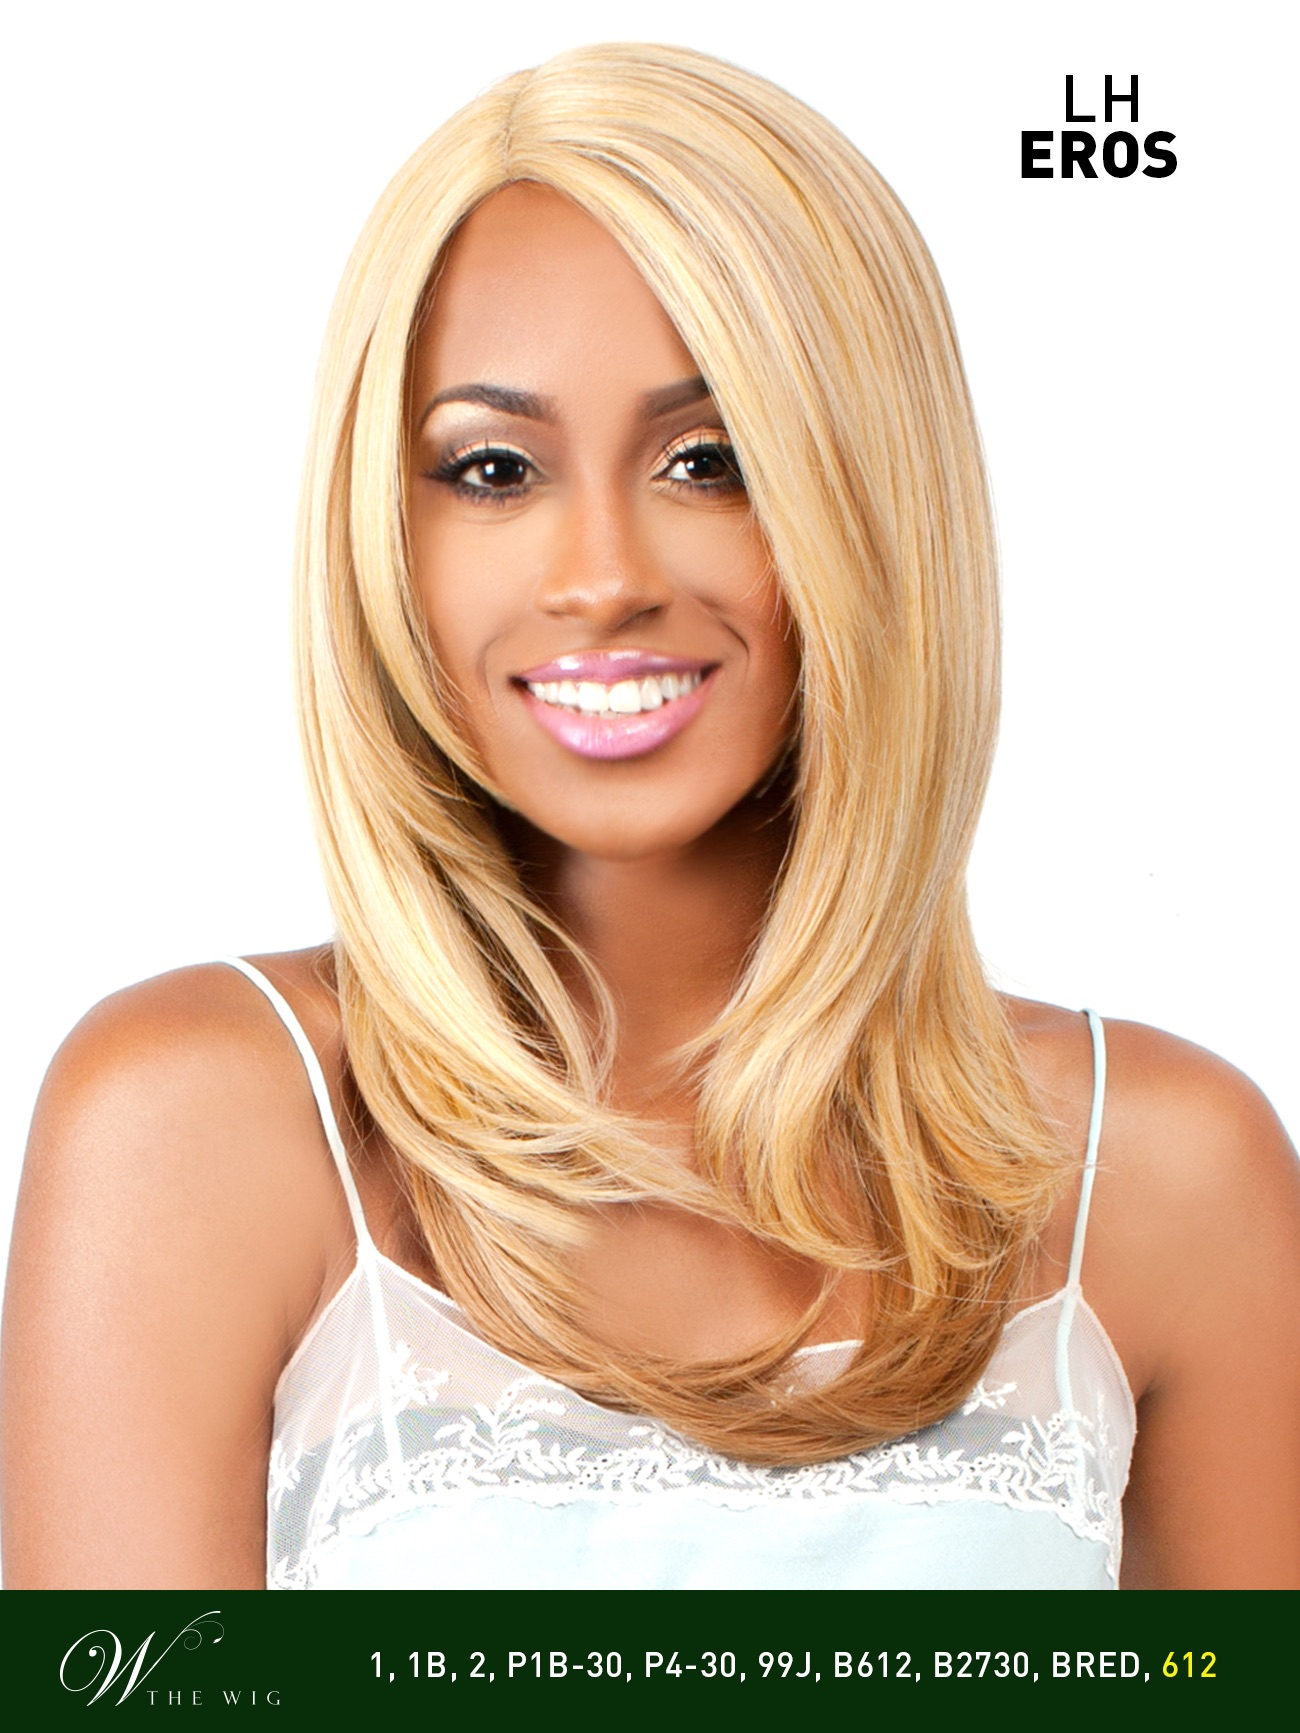 Lh eros the wig brazilian human hair blend invisible part lace front